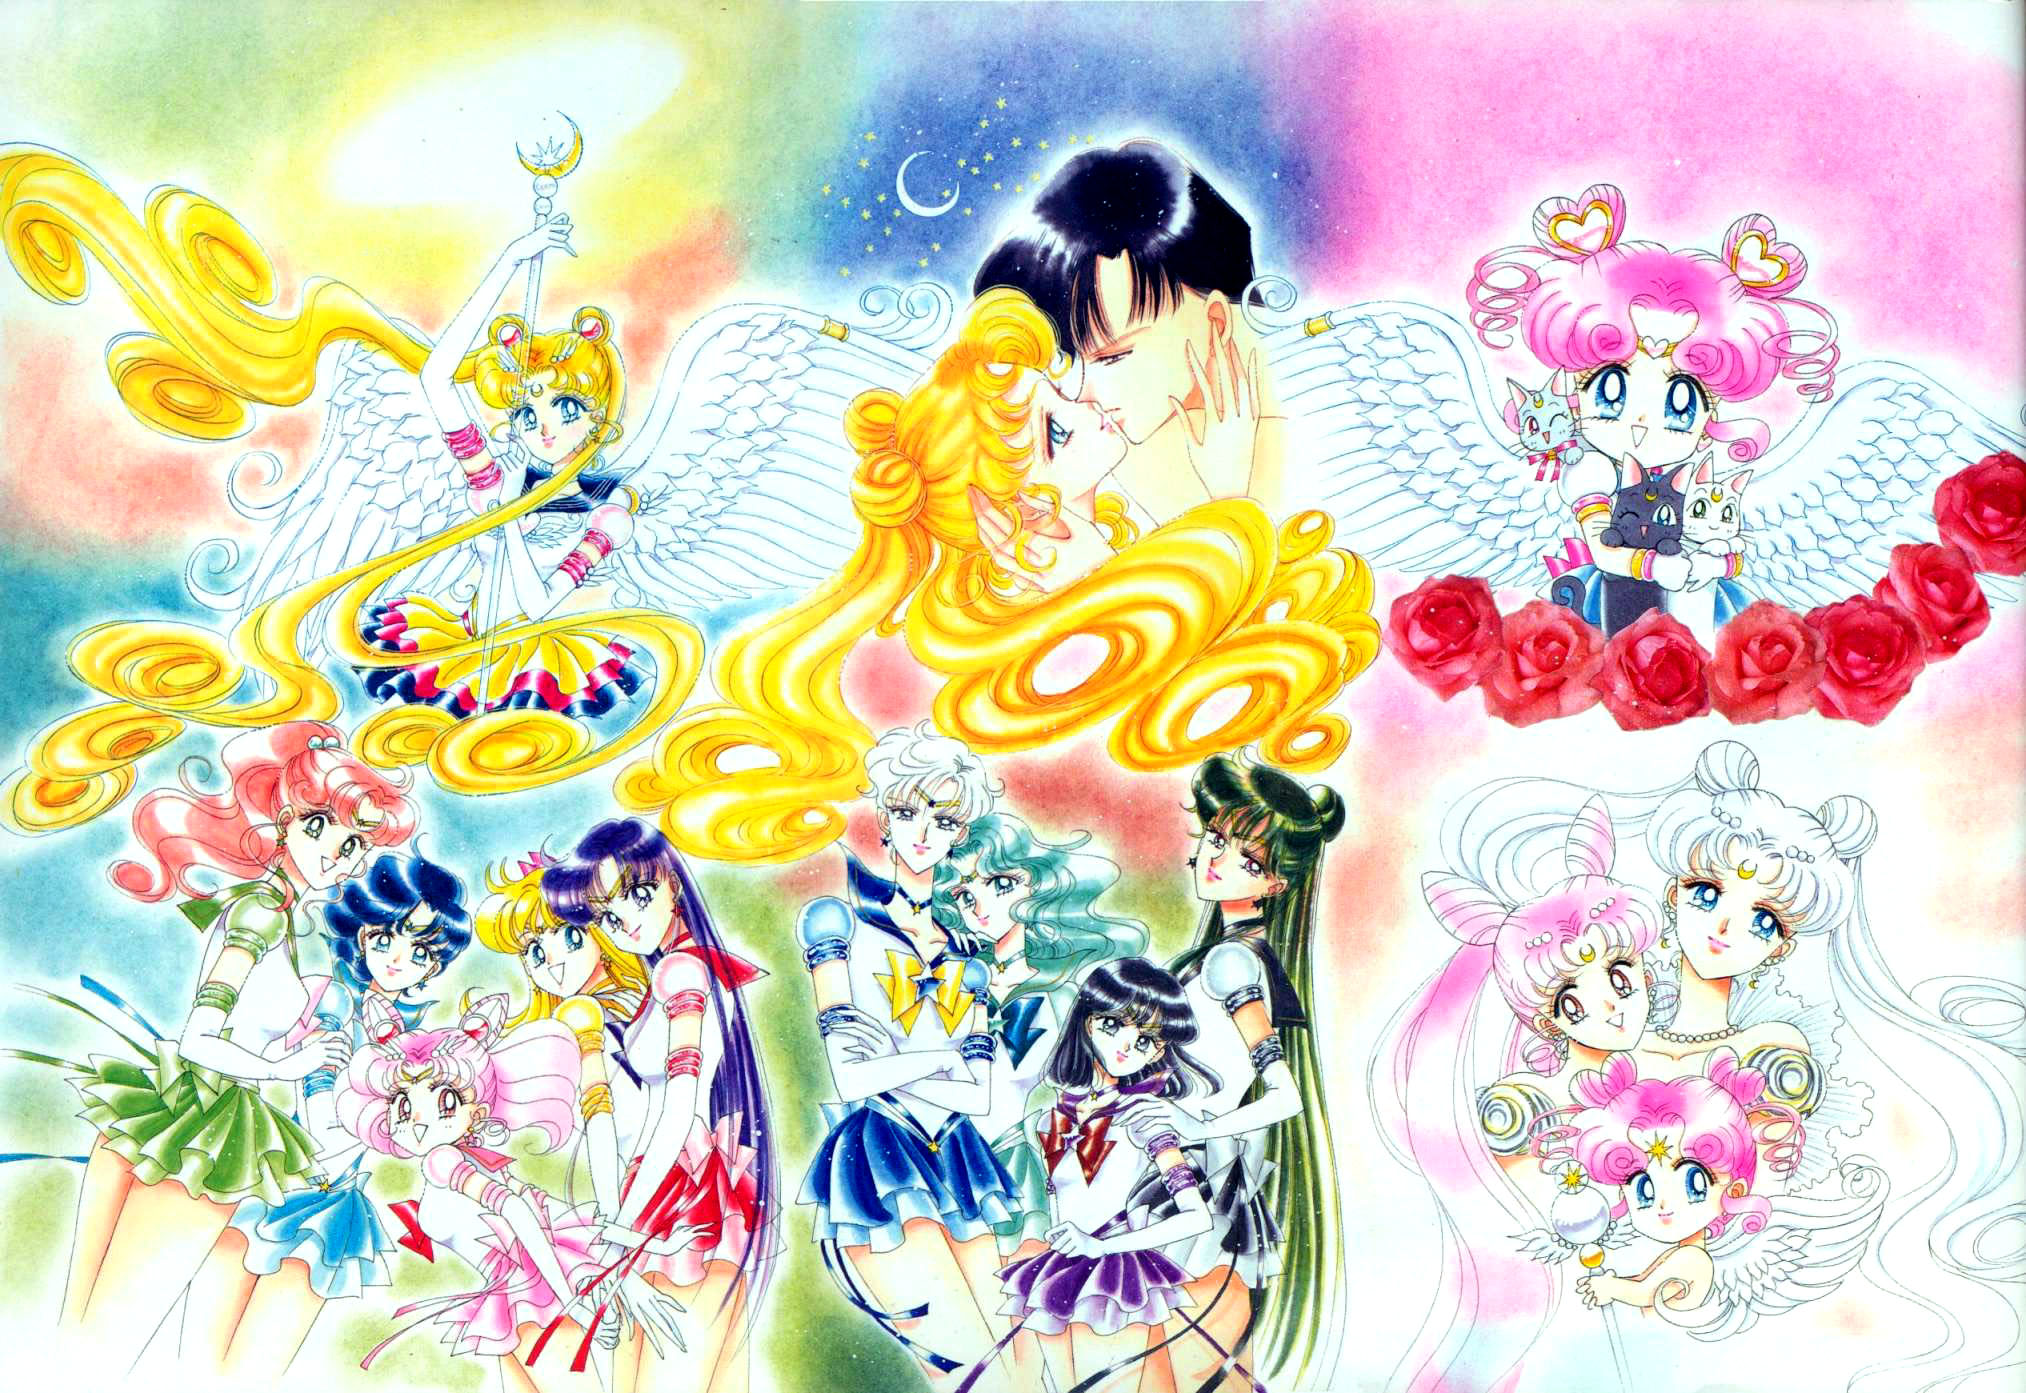 Most of the main characters of Sailorstars manga